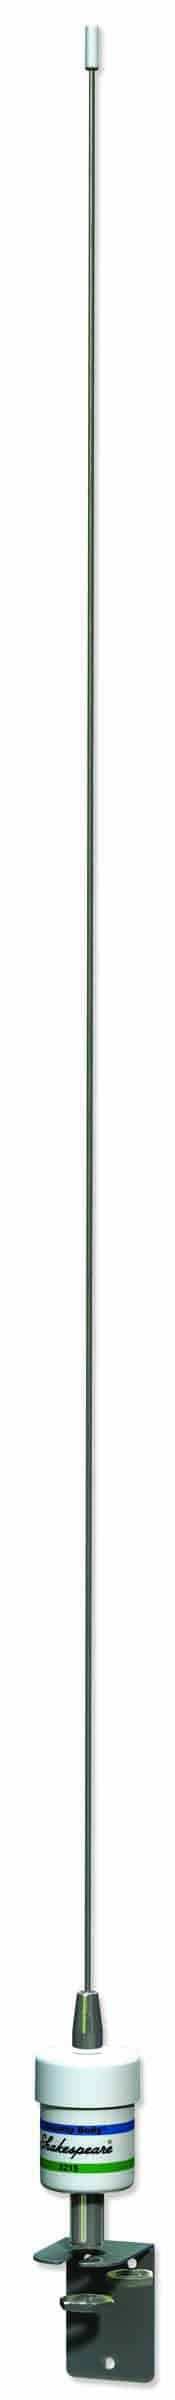 """5215 - Shakespeare 36"""" 3Db Vhf Low Profile Stainless Antenna"""